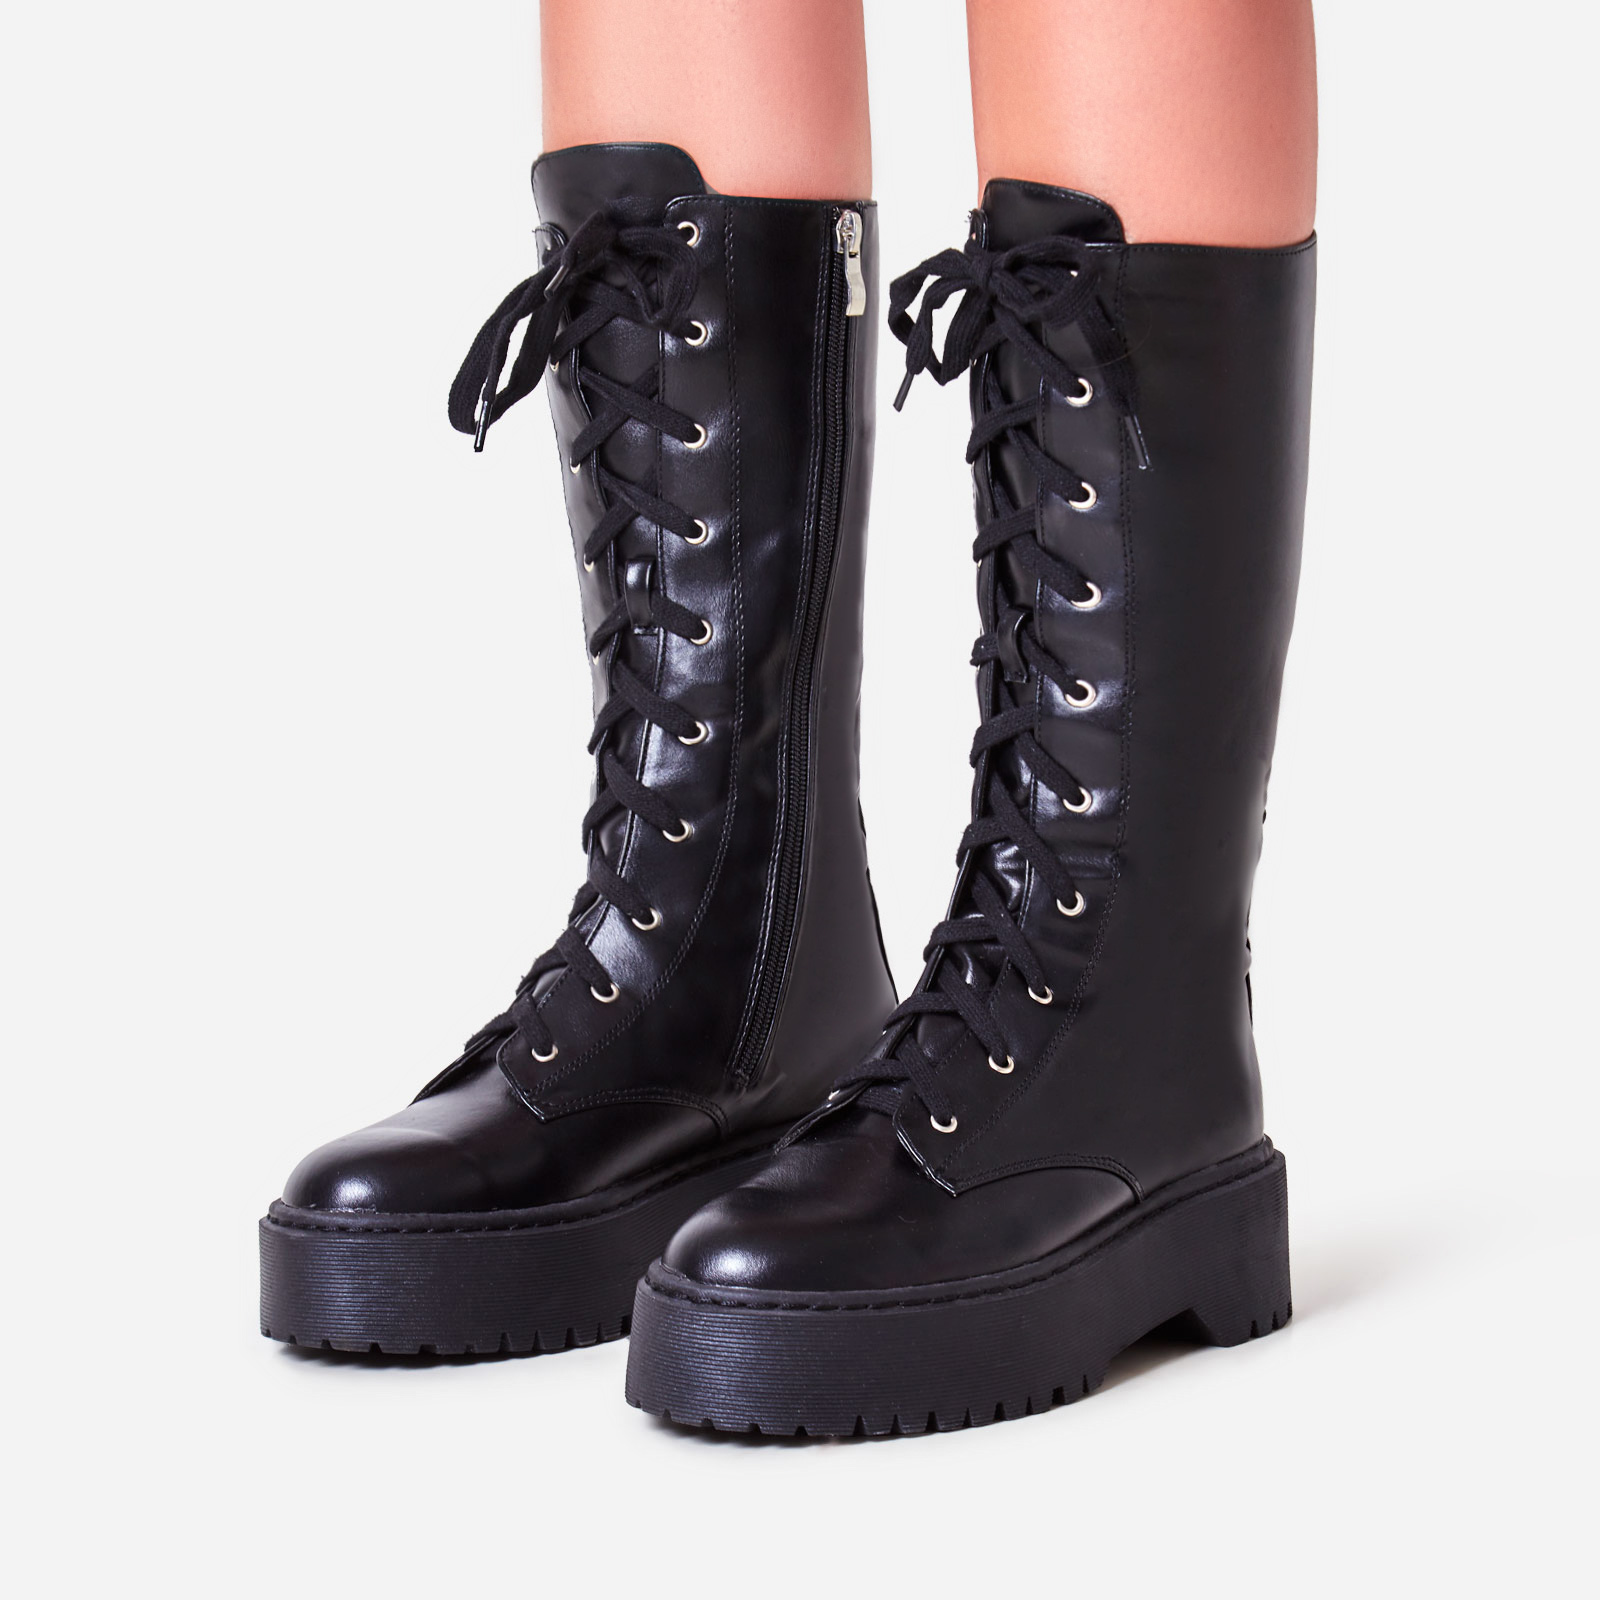 Tribeca Knee High Lace Up Ankle Biker Boot In Black Faux Leather